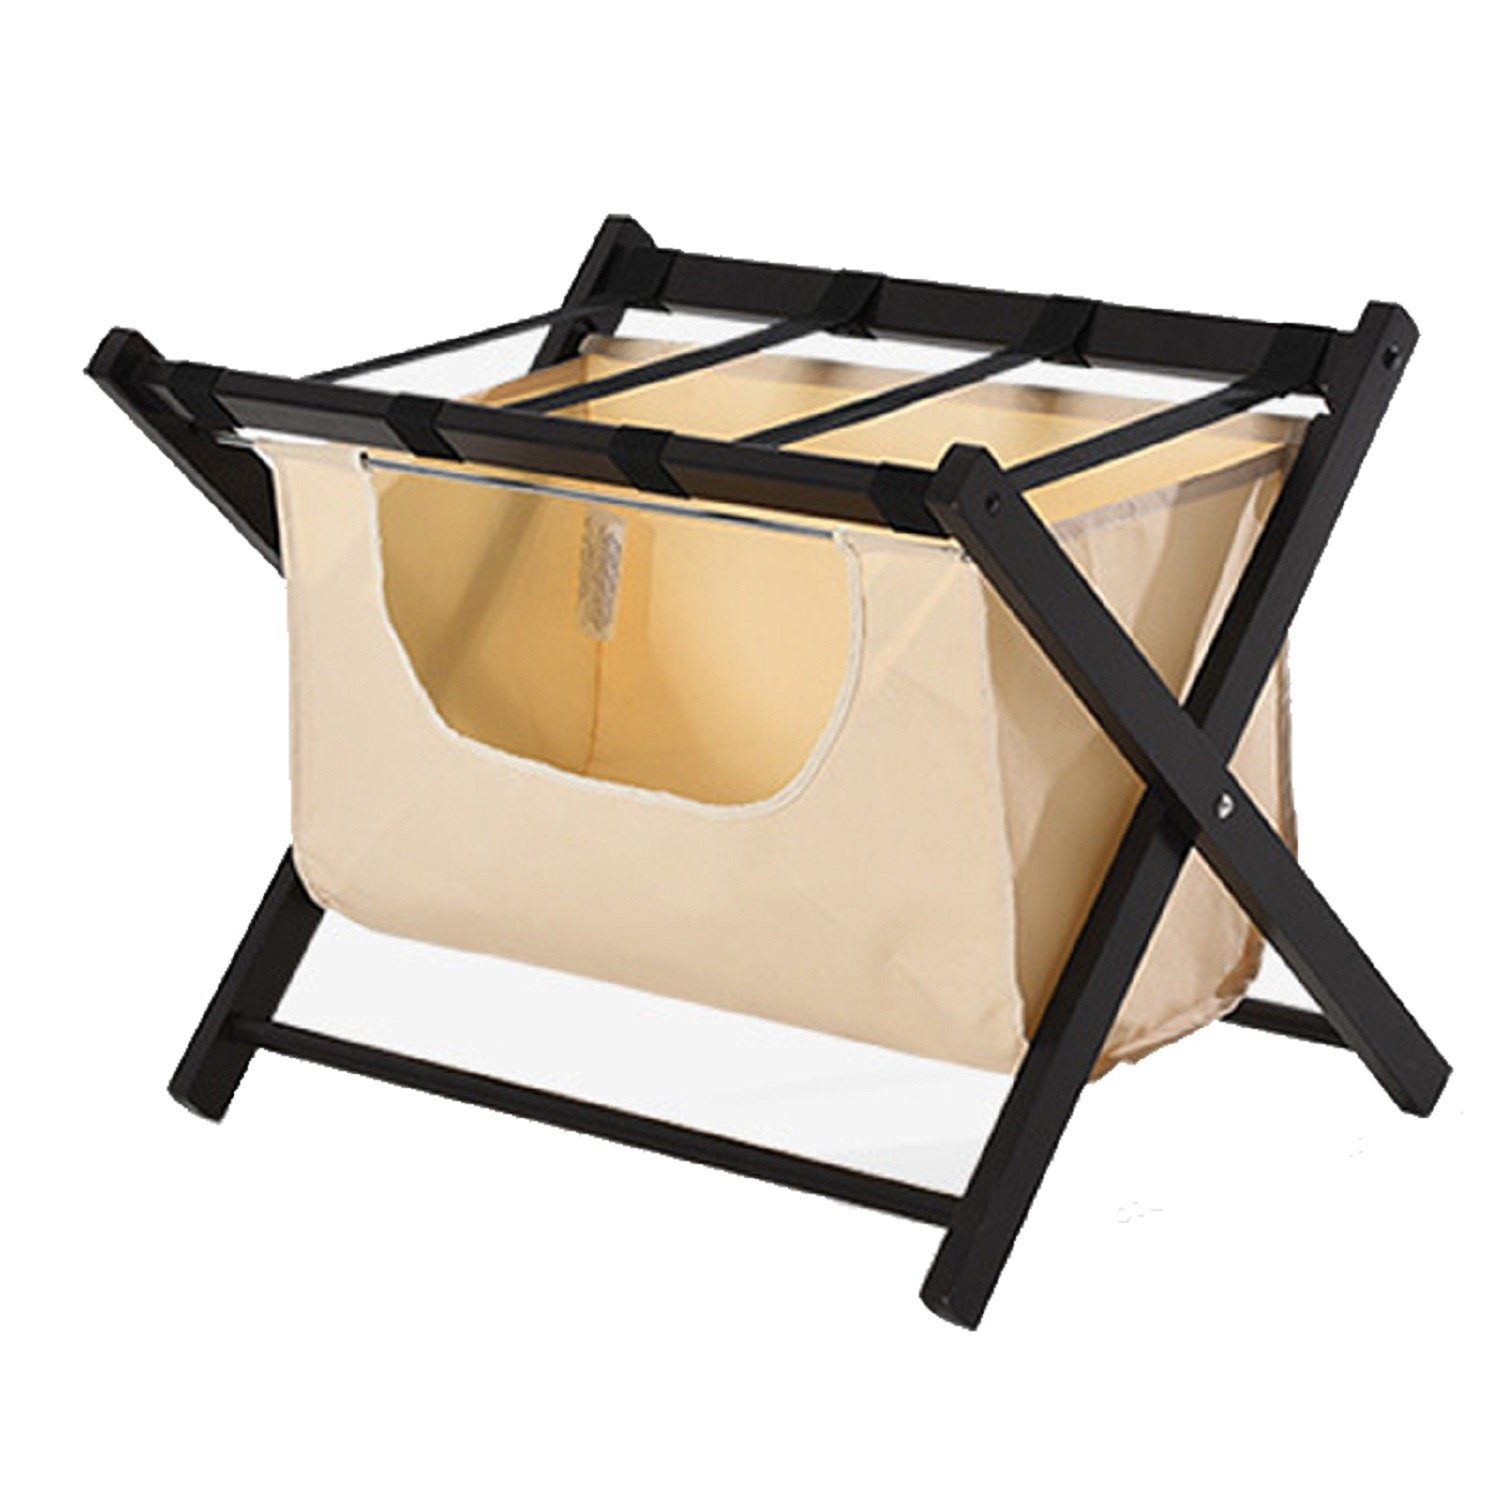 JUIANG Solid Wood Luggage Rack Hotel Restaurant Storage Rack Guest Room Home Made Multifunctional Bedroom Folded Dirty Clothes Storage Rack